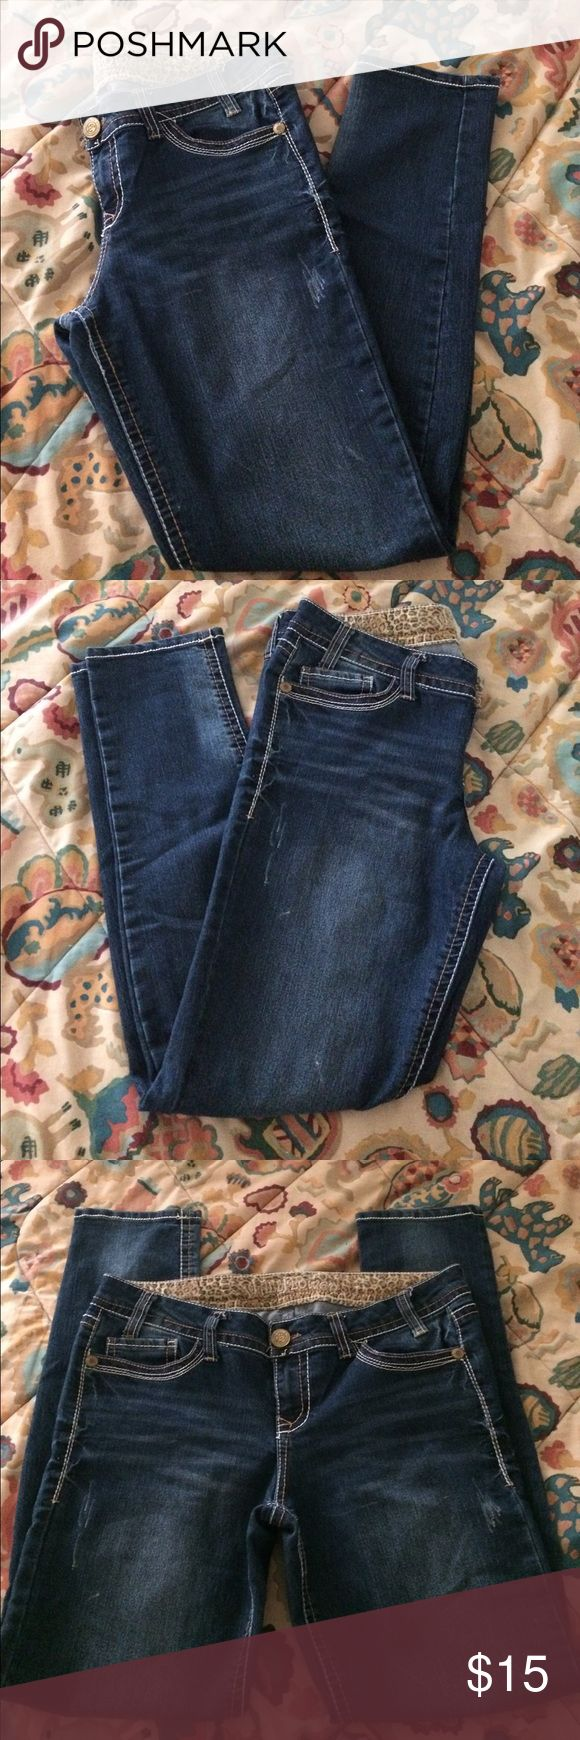 """Wallflower Jeans Wallflower jeans with design on back pockets. Only worn a few times and still in great condition. 5 functional pockets with a small one in the front right pocket. Some scratch like designs throughout the pants. Waist is 17"""" and inseam is 30.5"""". Wallflower Jeans"""